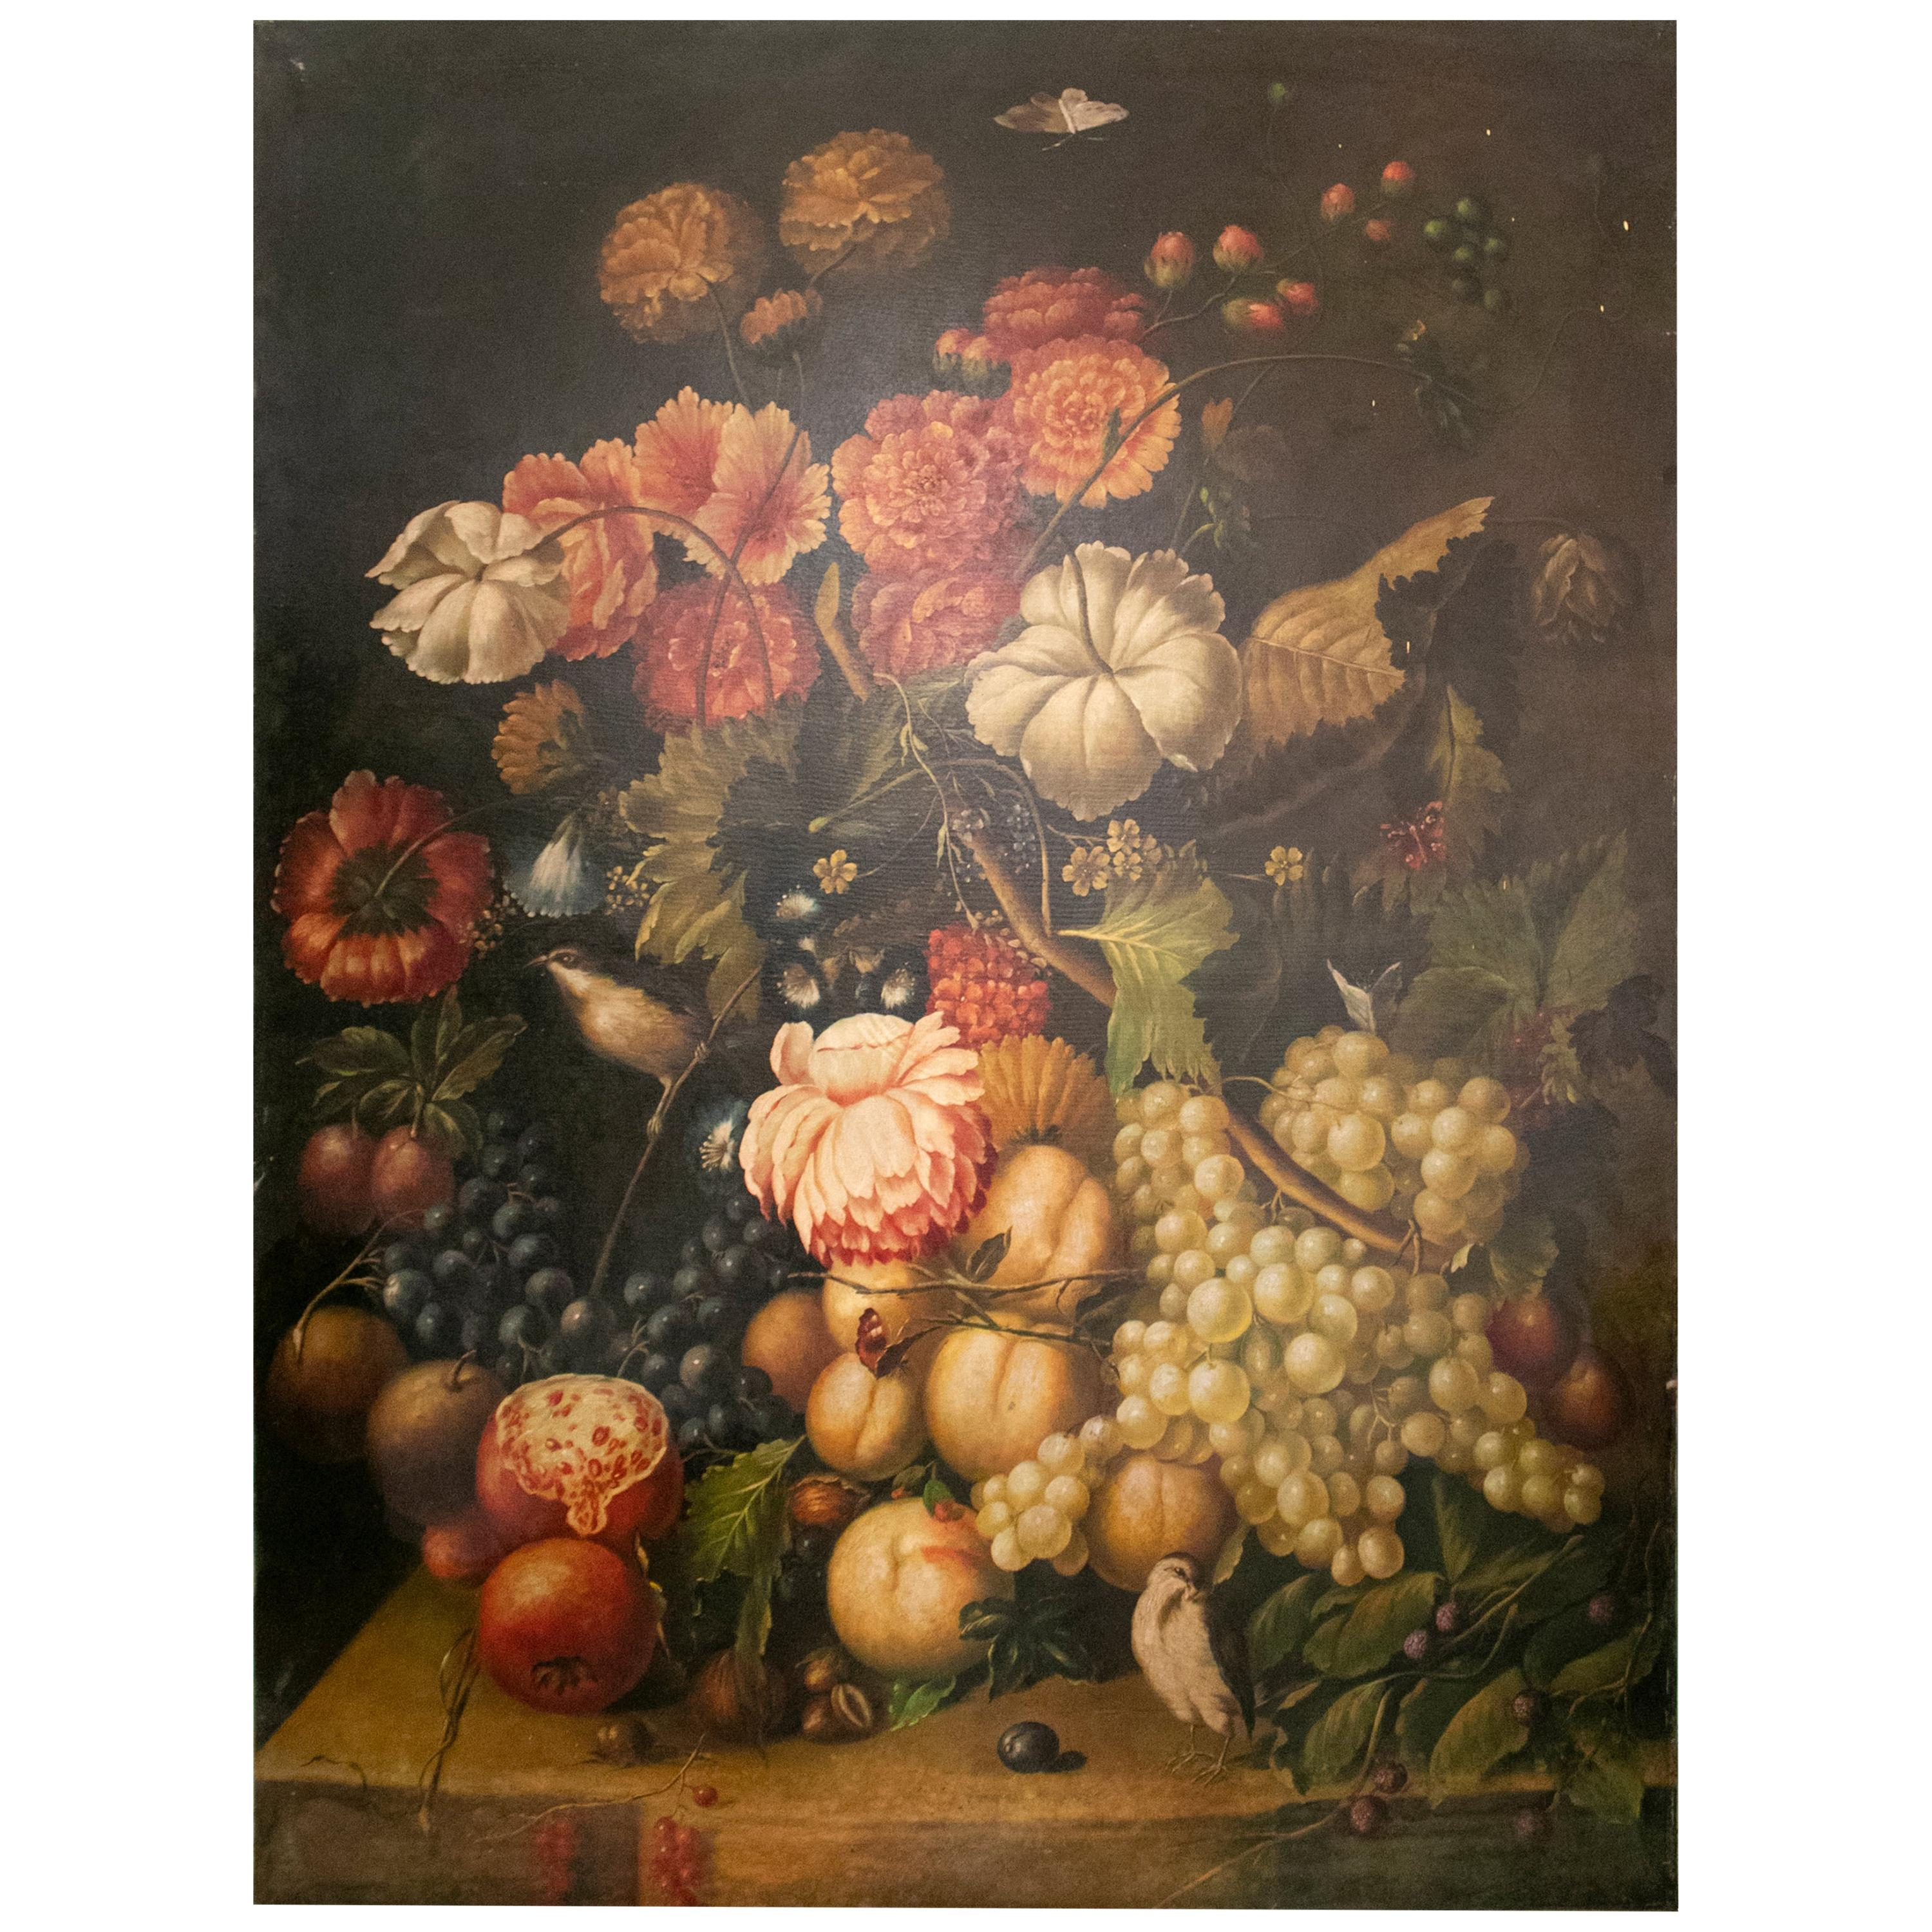 """Large Spanish """"Bodegon"""" Still Live Oil on Canvas Painting with Flowers & Fruits"""